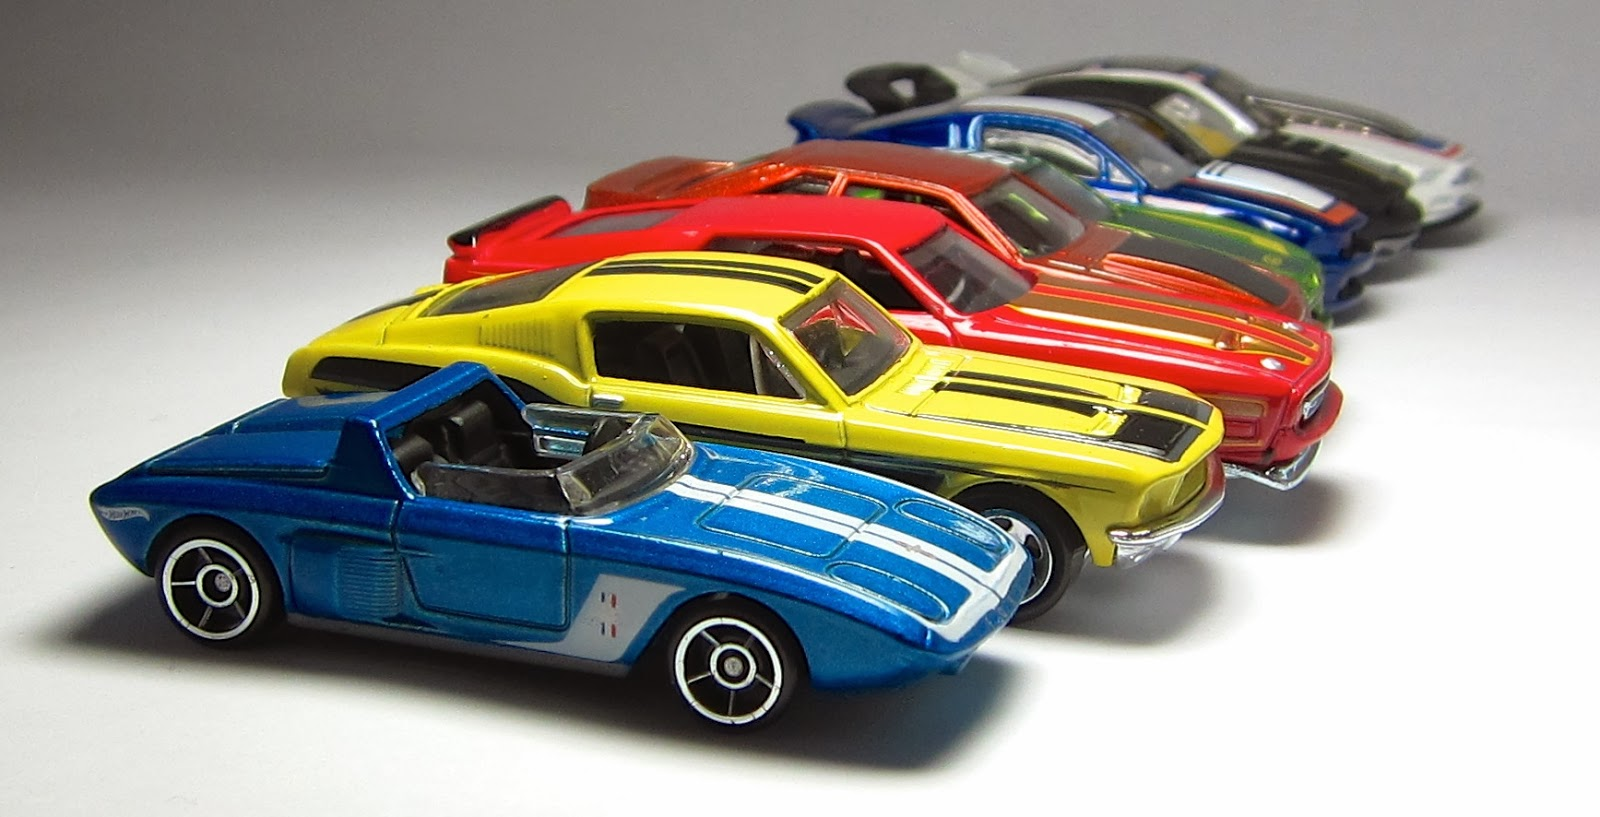 First Look: Hot Wheels Ford Mustang 50th Anniversary Set, Part 1